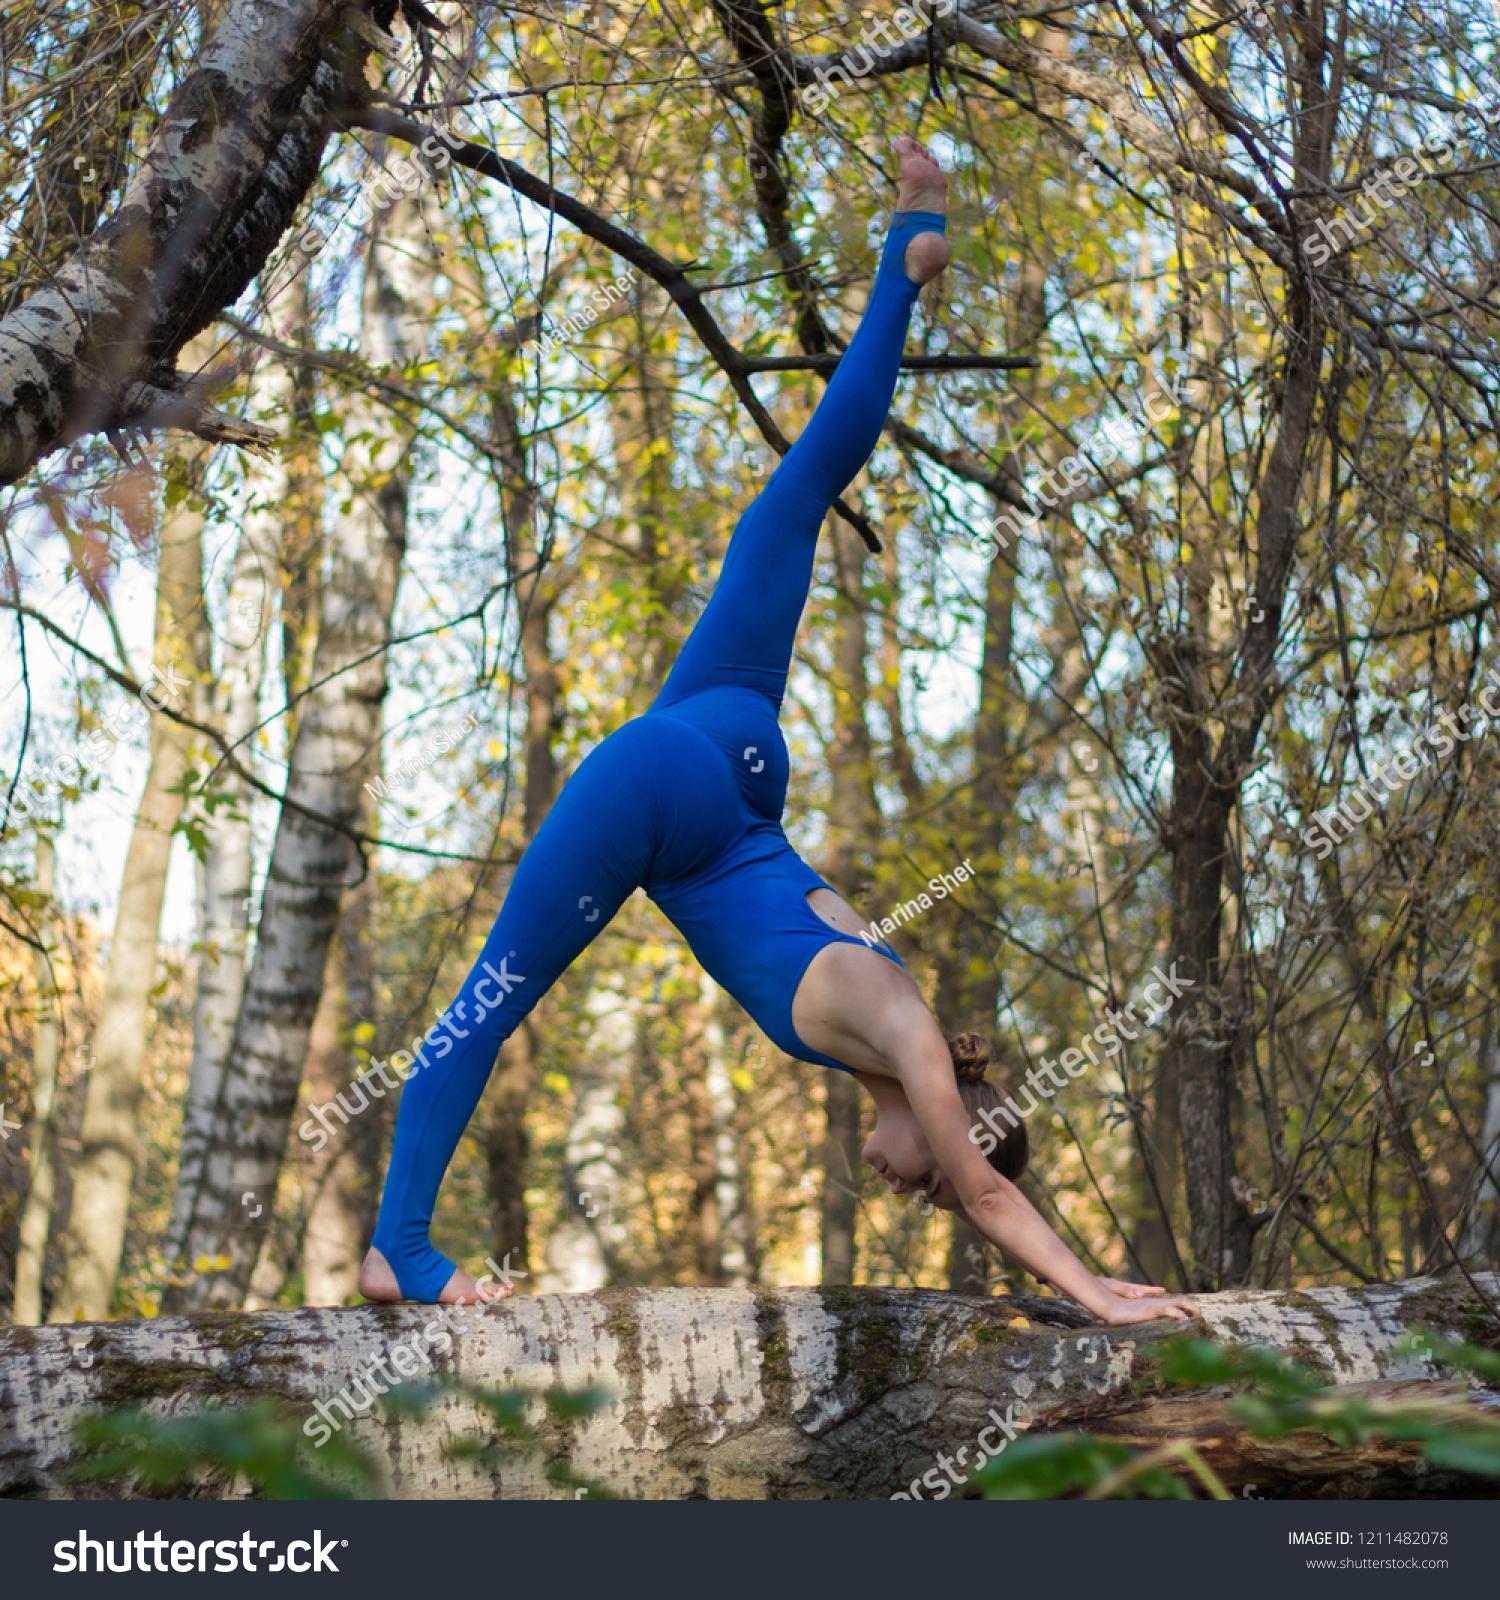 https://image.shutterstock.com/z/stock-photo-girl-doing-stretching-on-the-tree-in-the-forest-1211482078.jpg